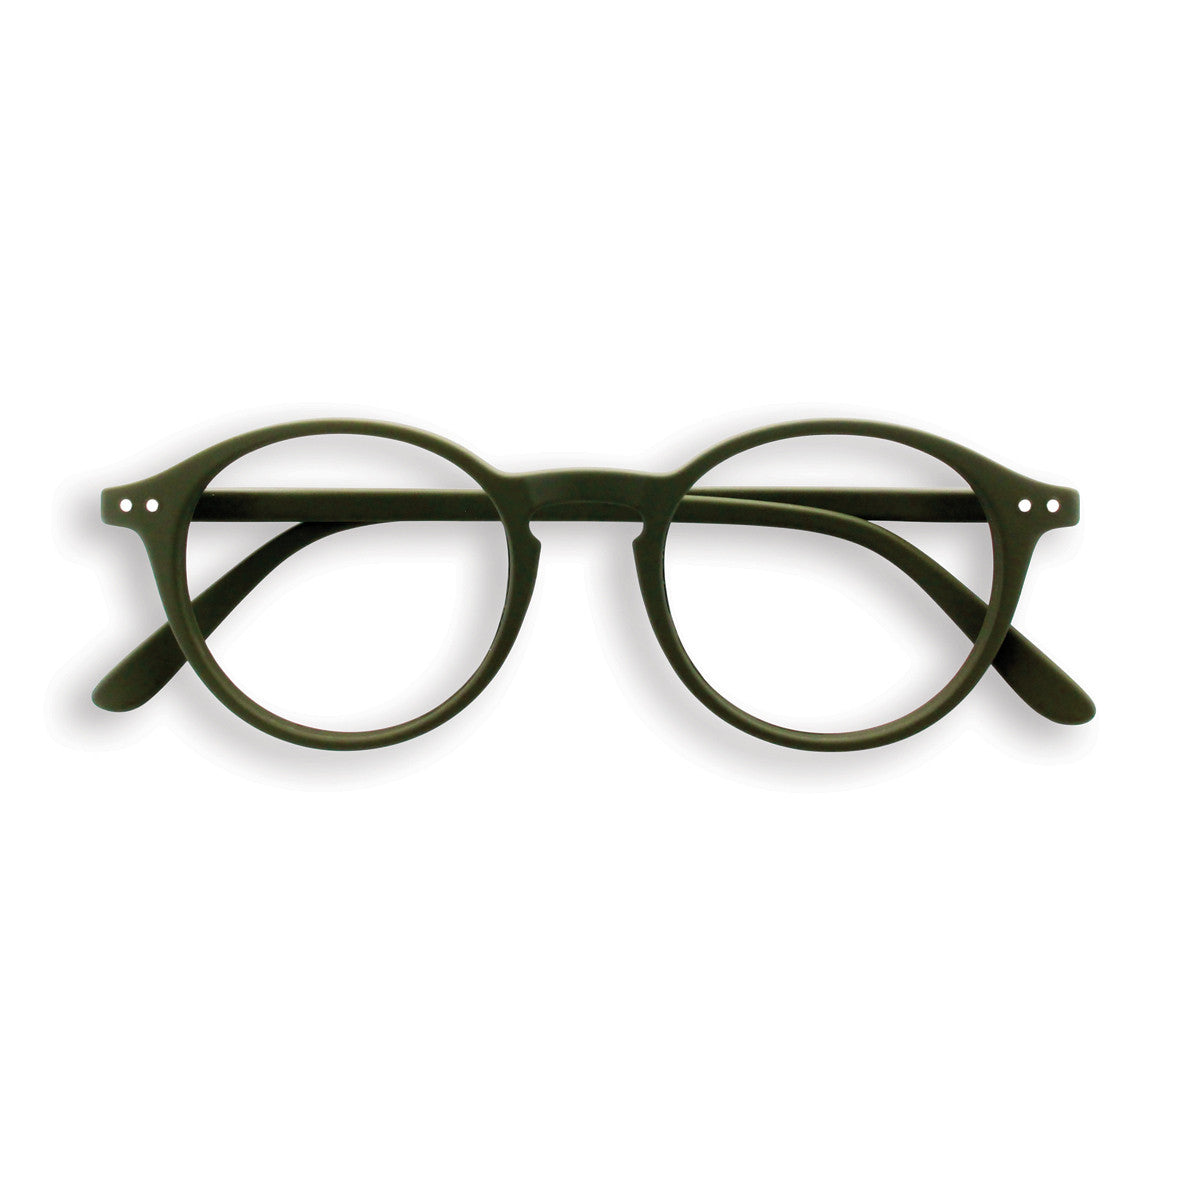 BLUE LIGHT BLOCKER GLASSES / STYLE D / KHAKI GREEN